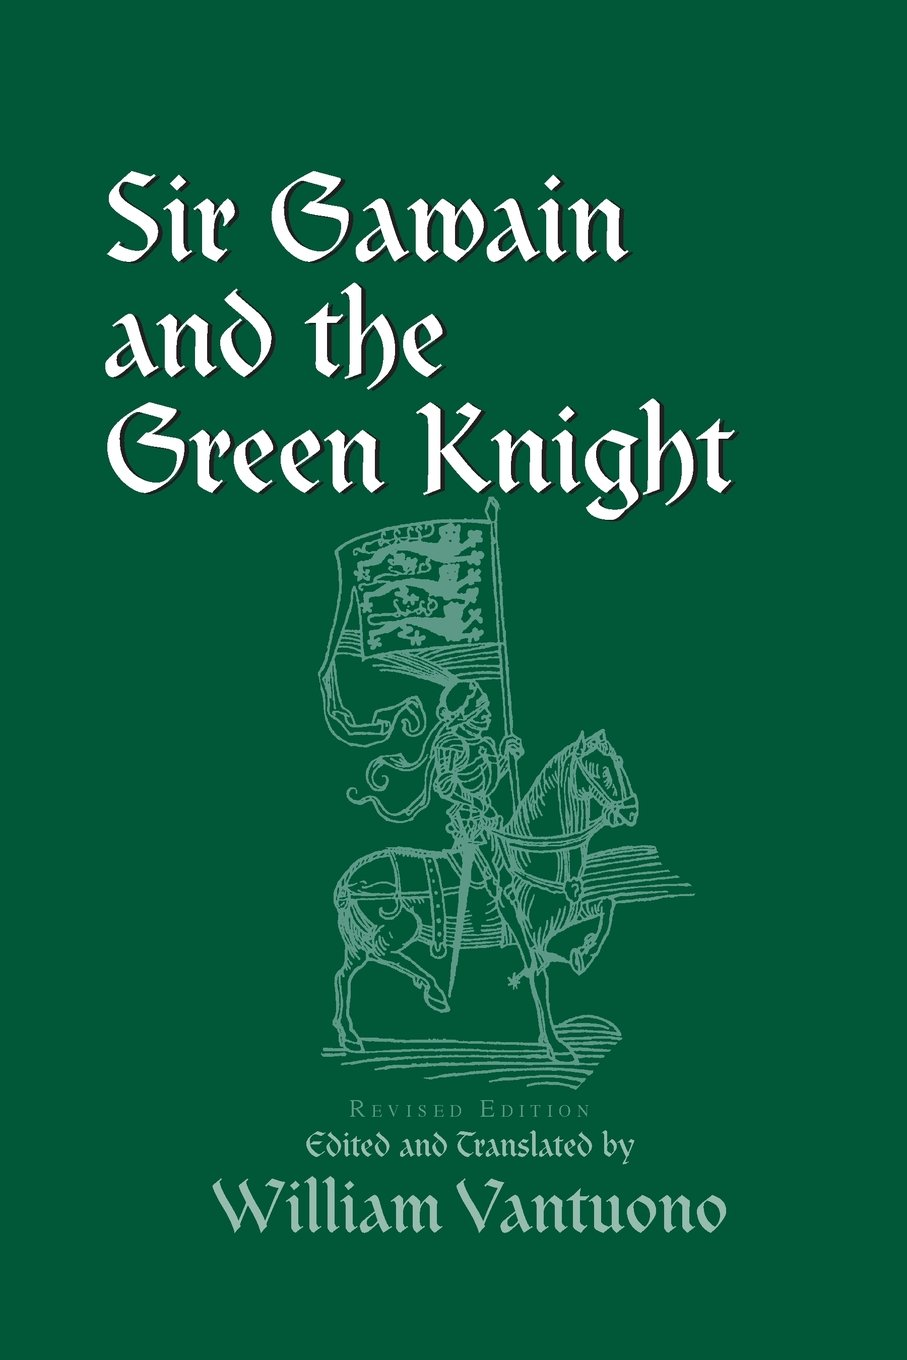 Sir gawain and the green knight william vantuano 9780268017675 sir gawain and the green knight william vantuano 9780268017675 amazon books fandeluxe Gallery